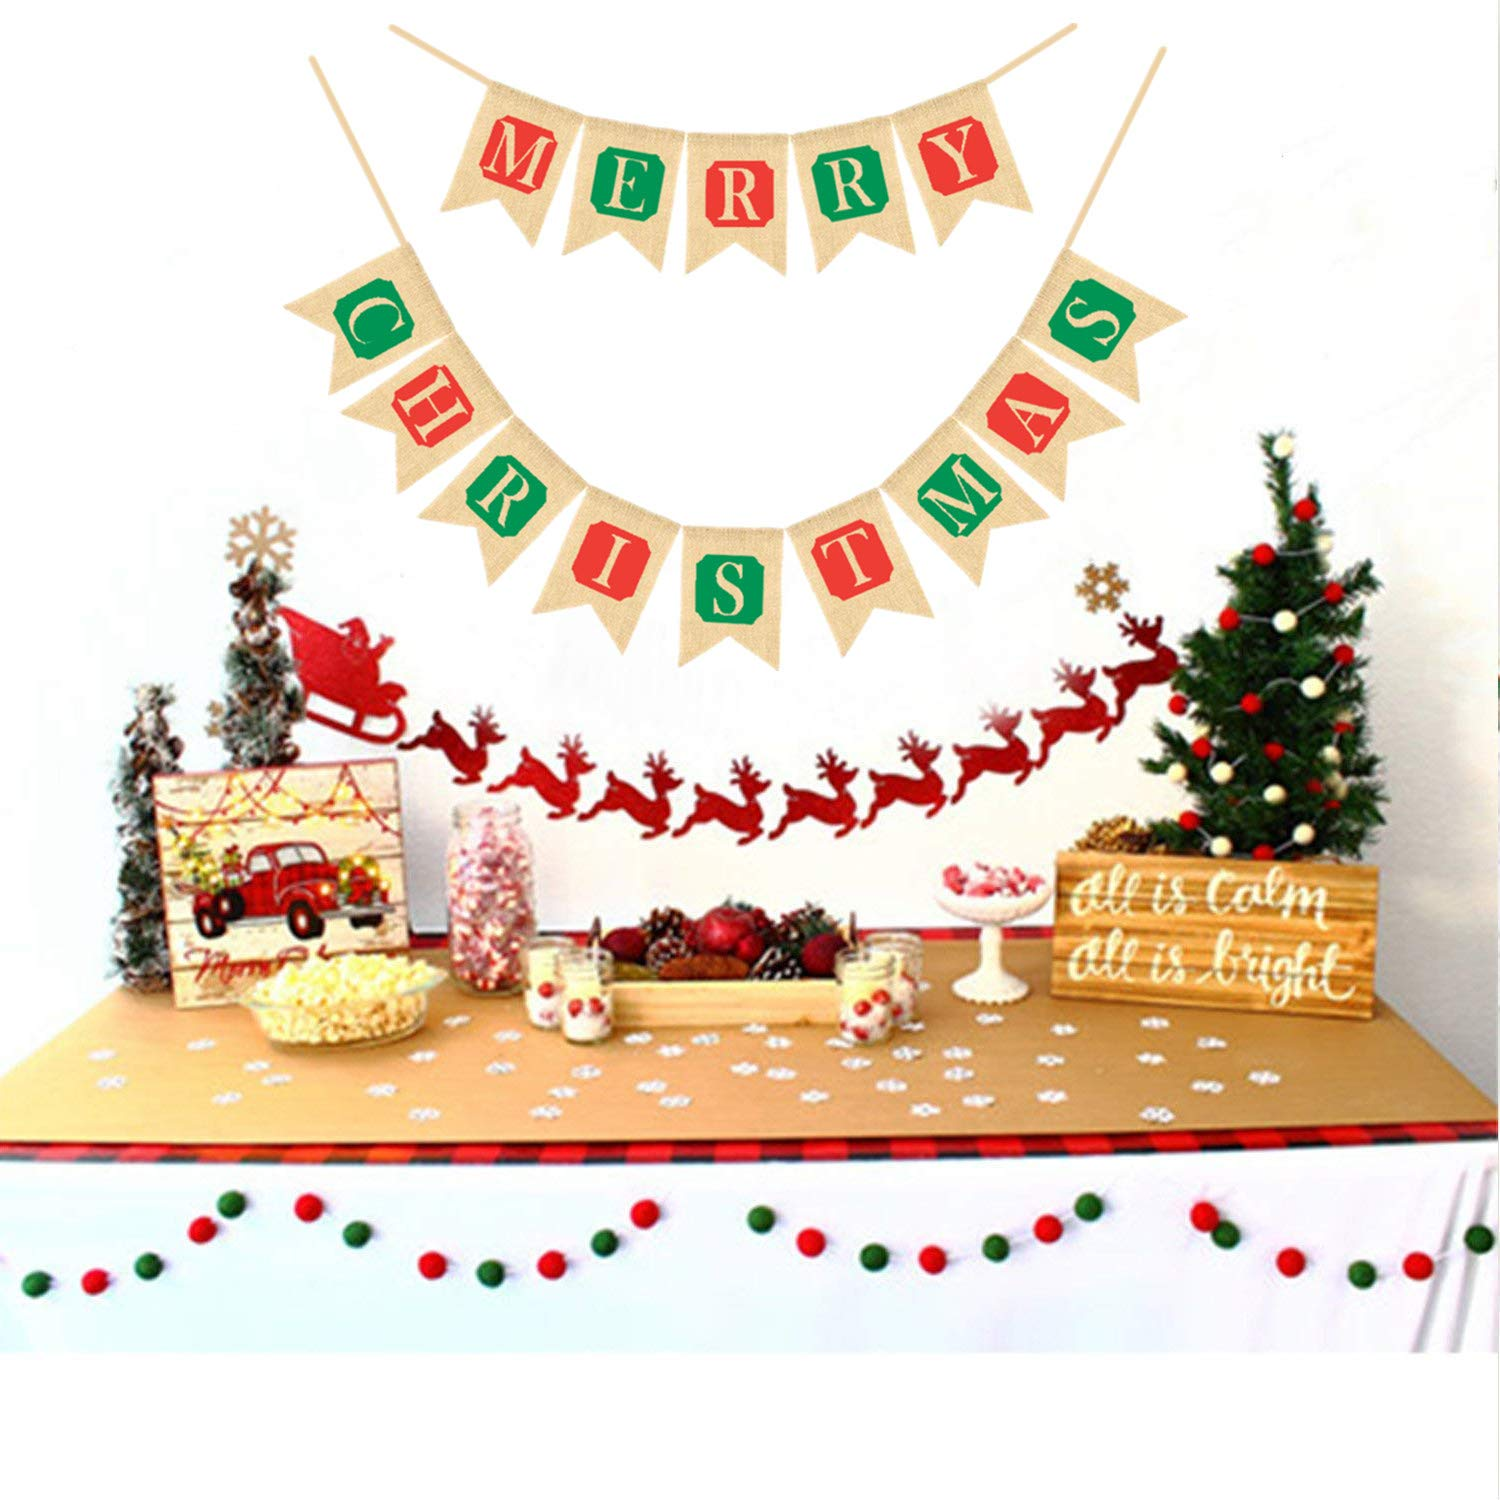 Merry Christmas Burlap Banners Garlands for Fireplace Christmas Tree for Xmas Decoration Party Indoor Outdoor Family Photo Props